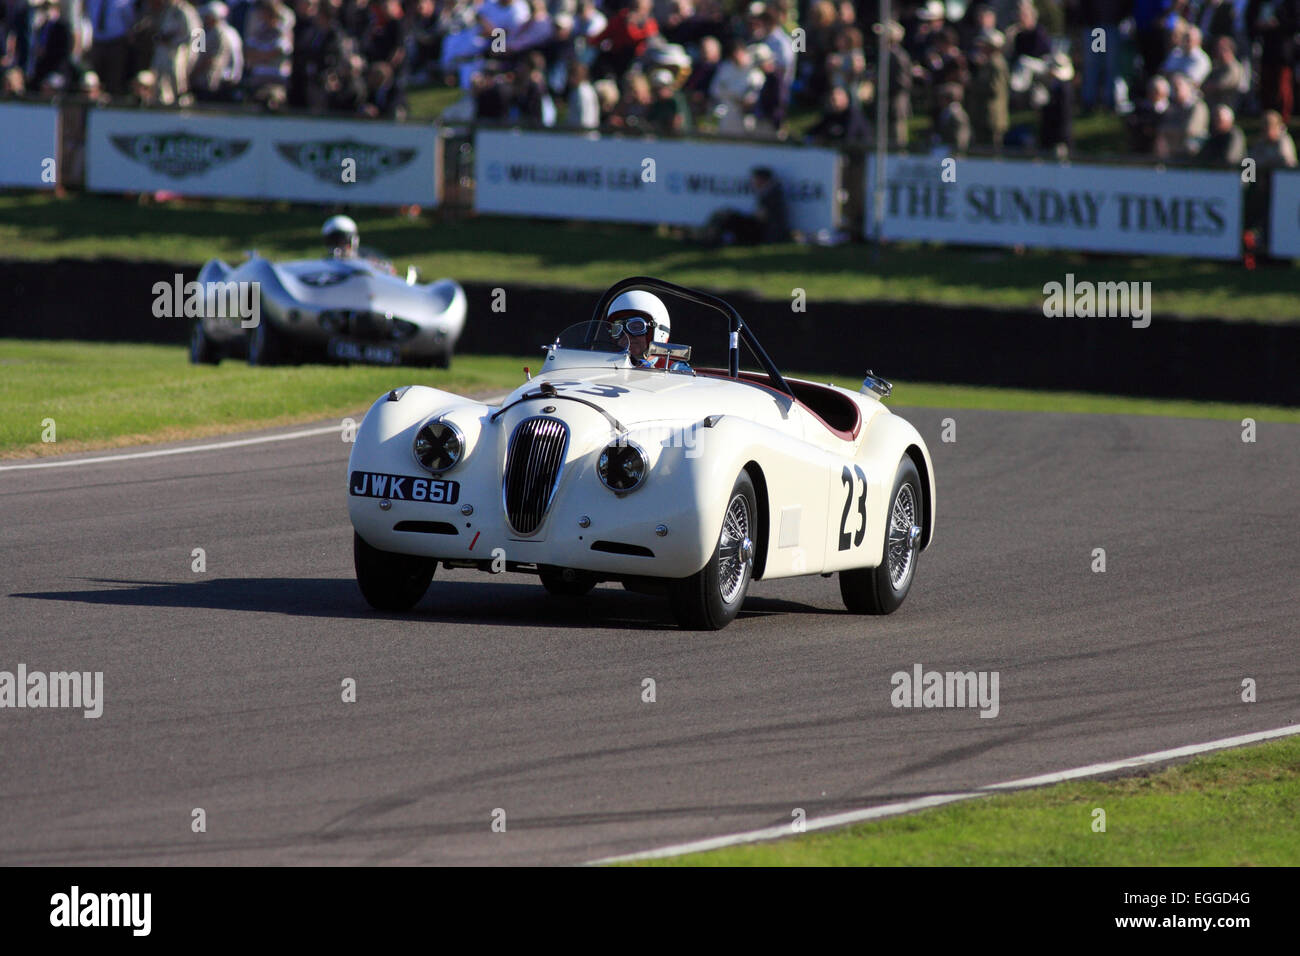 1950 Jaguar XK120 driven by Stephen Bond emerging from Madgwick Corner / Goodwood Revival / Goodwood / UK - Stock Image